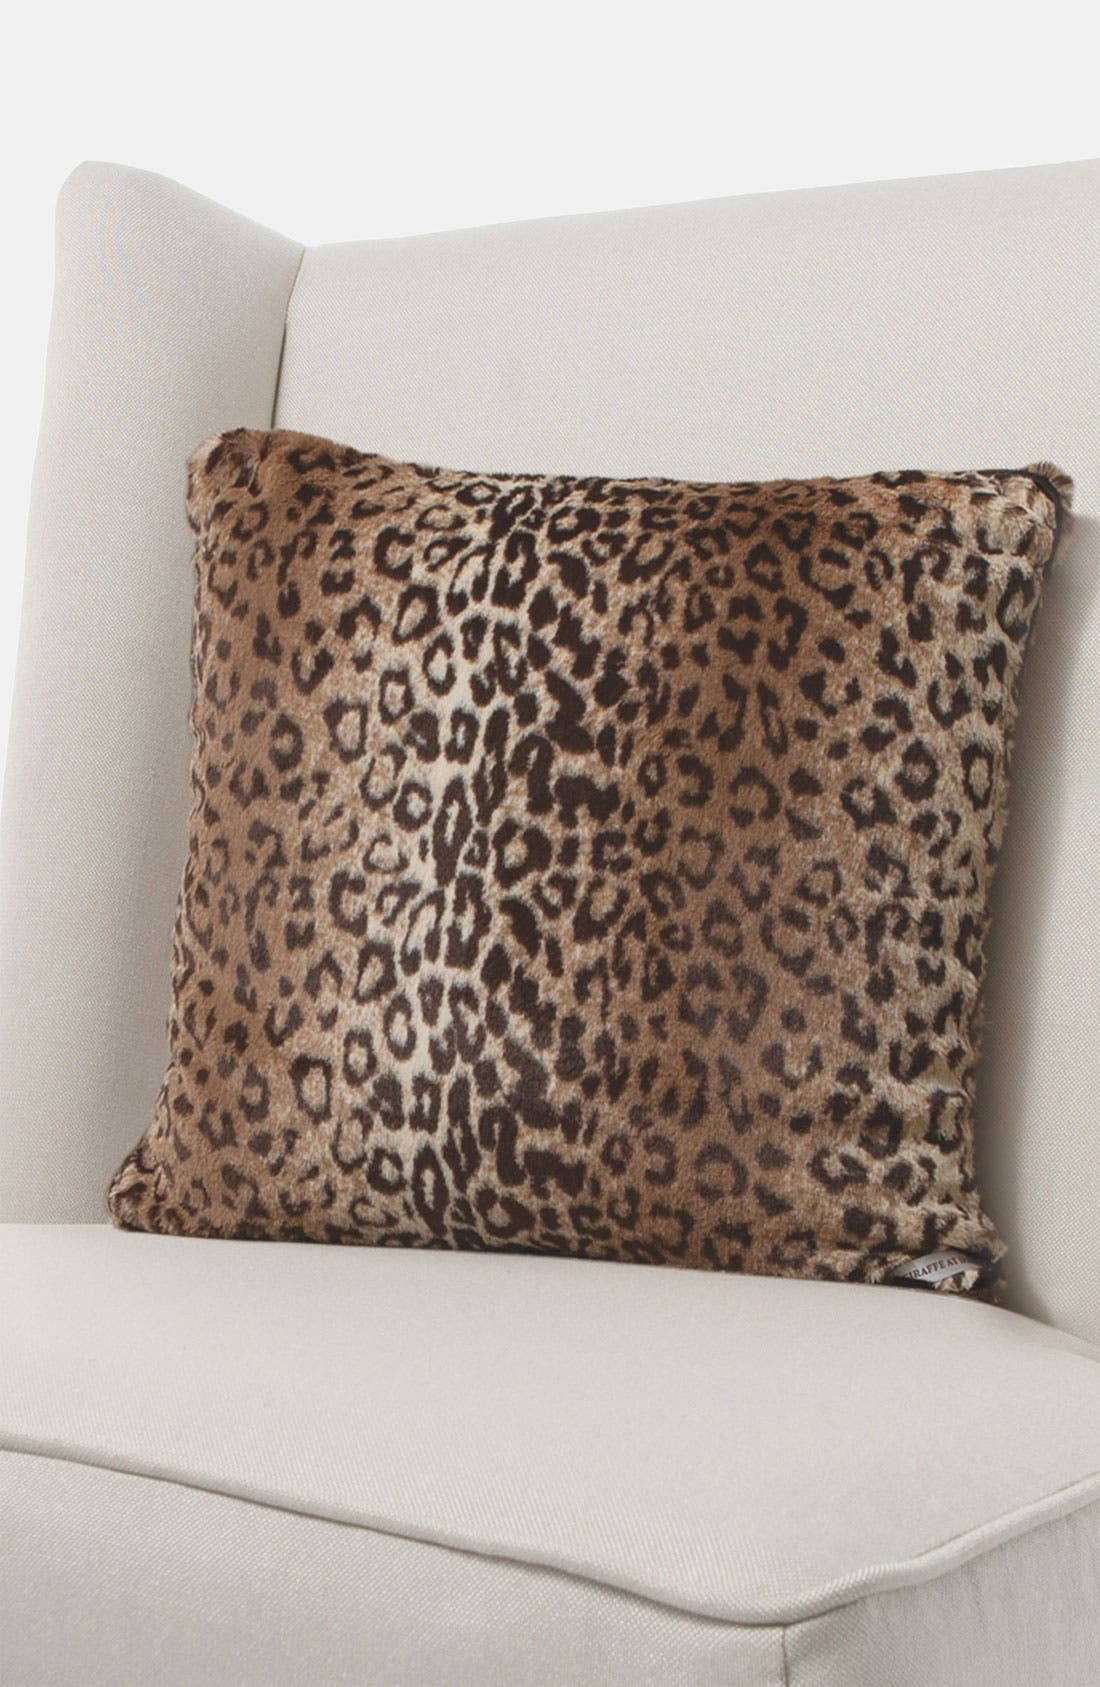 Main Image - Giraffe at Home 'Luxe Leopard' Throw Pillow (Online Only)